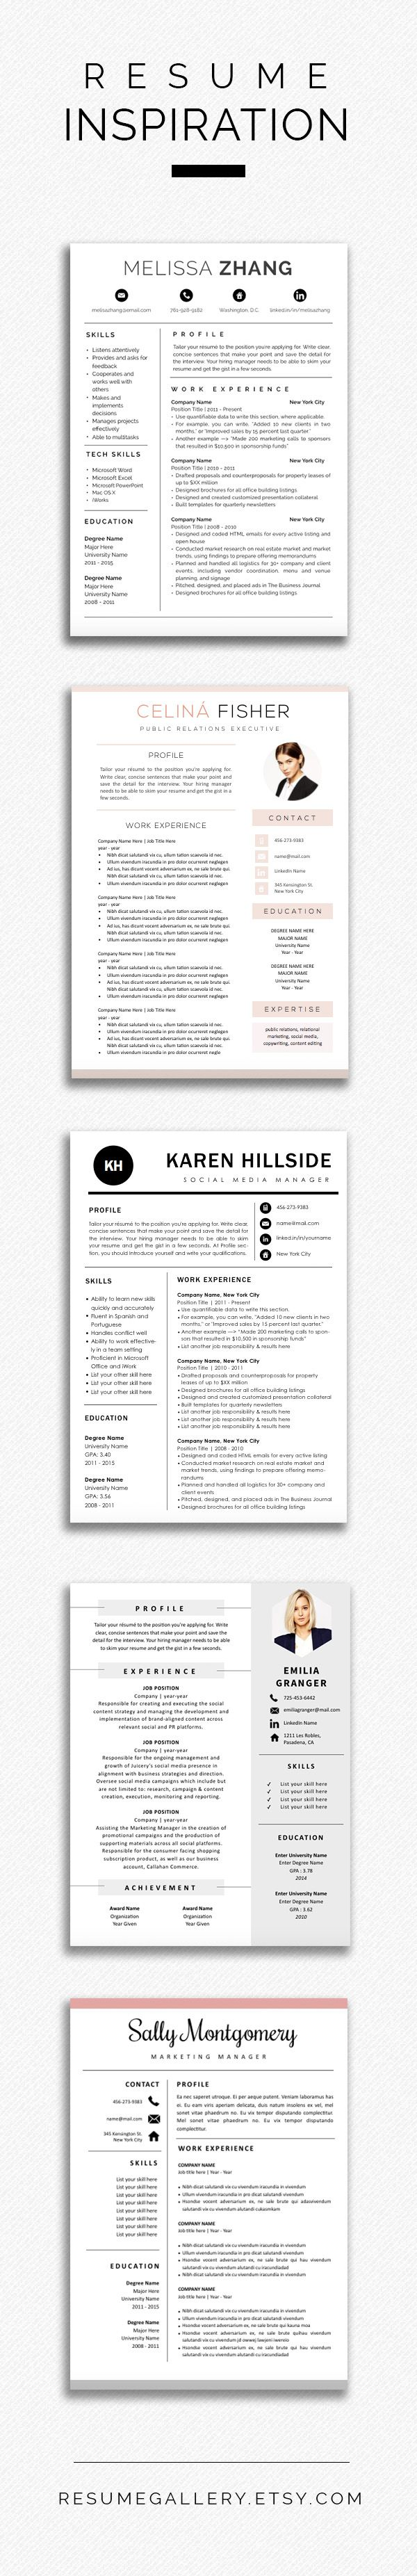 List Of Resume Skills Interesting 42 Best Resume Writing Images On Pinterest  Gym Resume And Interview